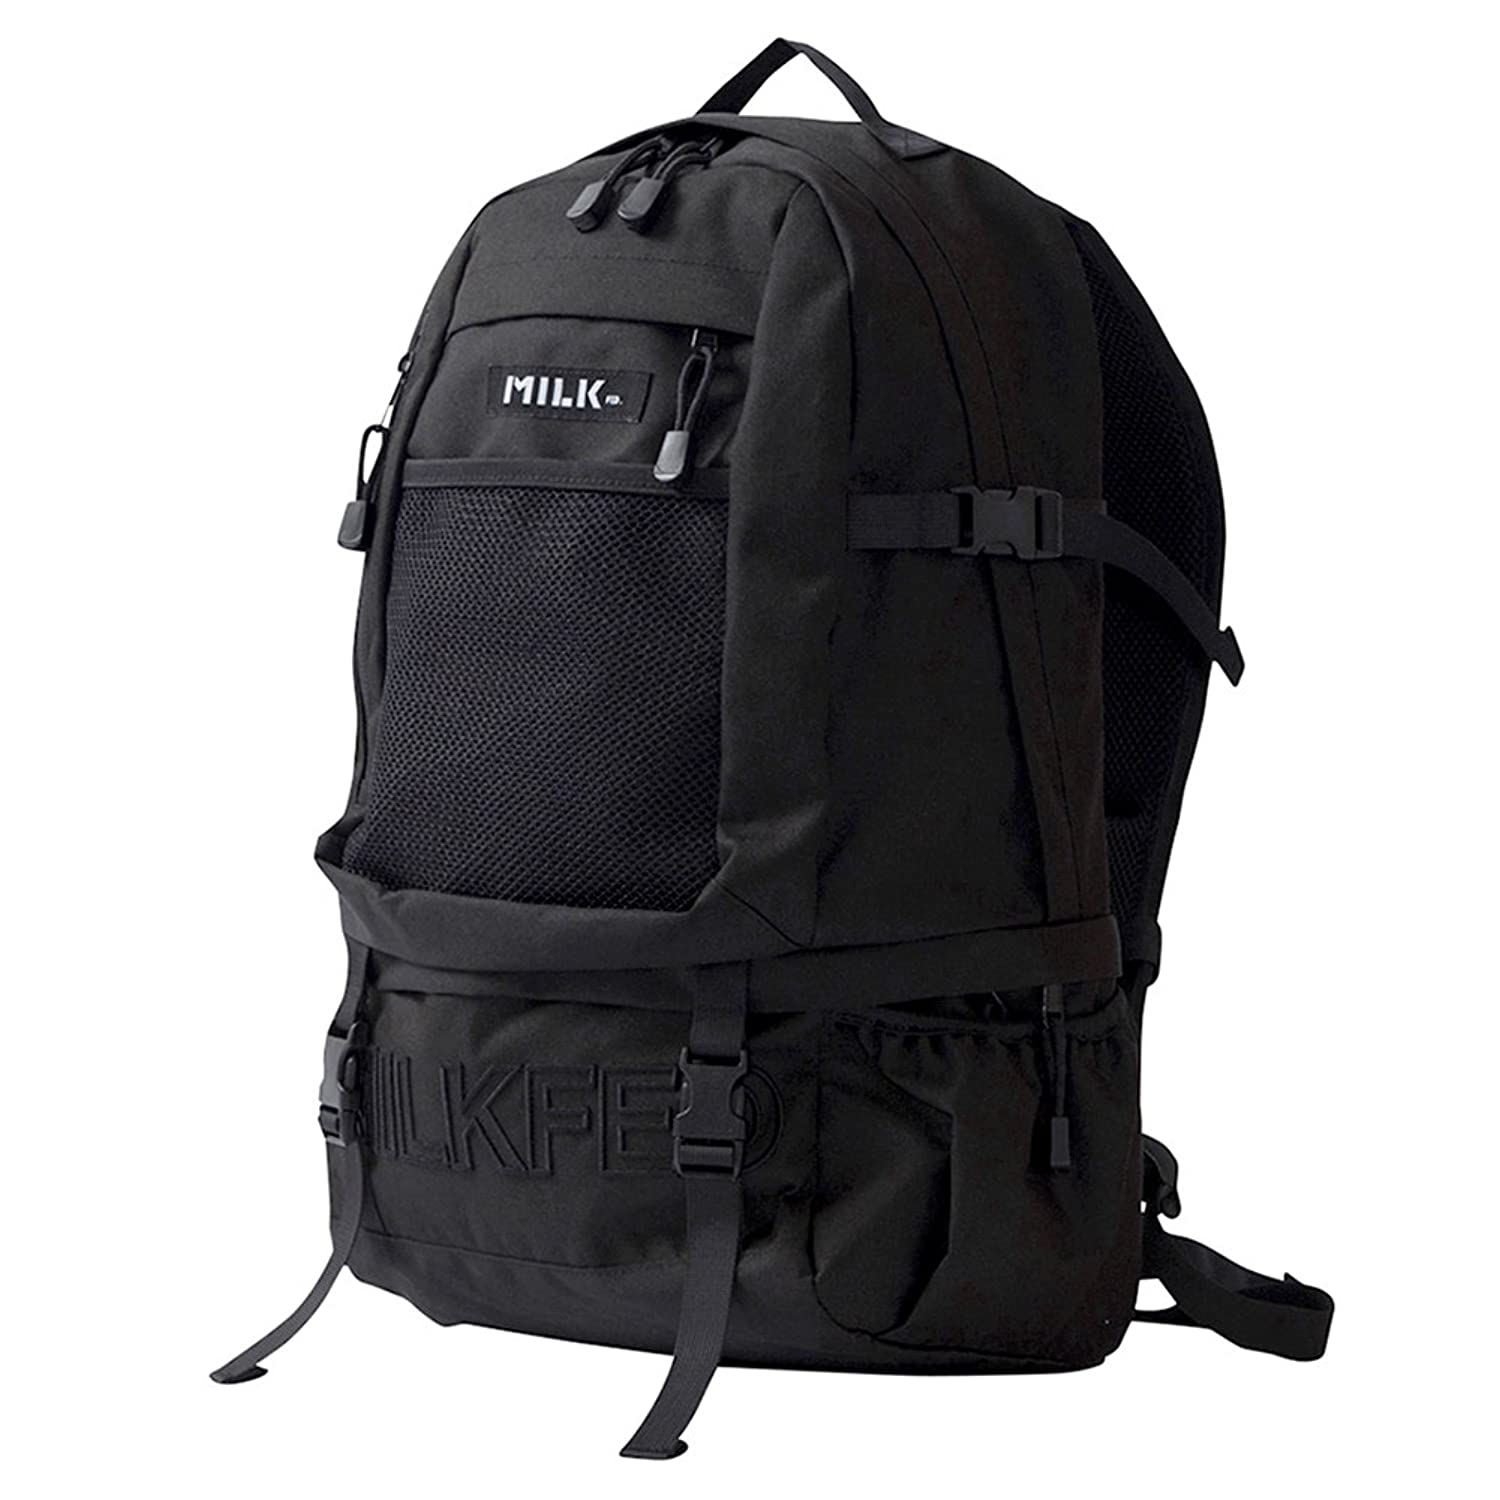 MILKFED embroidery big backpack バックパック リュックサック レディース 通学 カジュアル B077Z3KTC6  ブラック Free